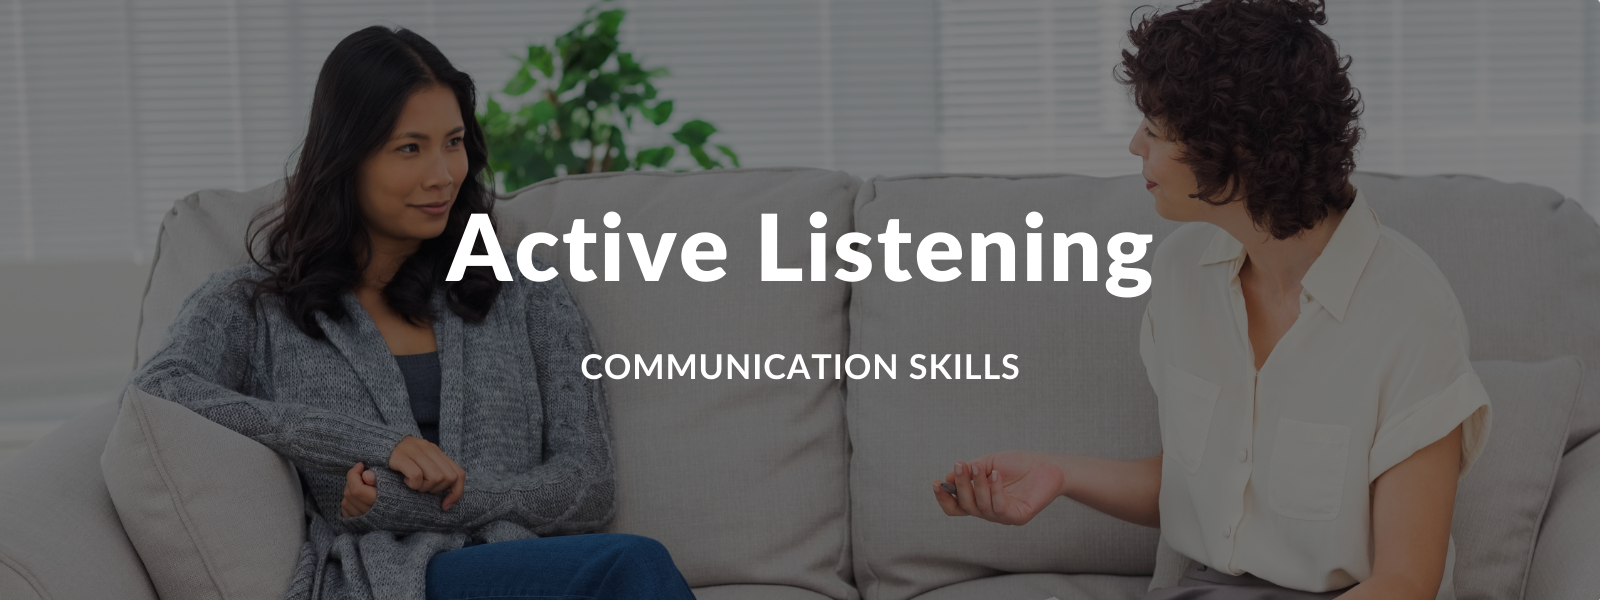 Active Listening Tips and Benefits | Talaera Business English Blog